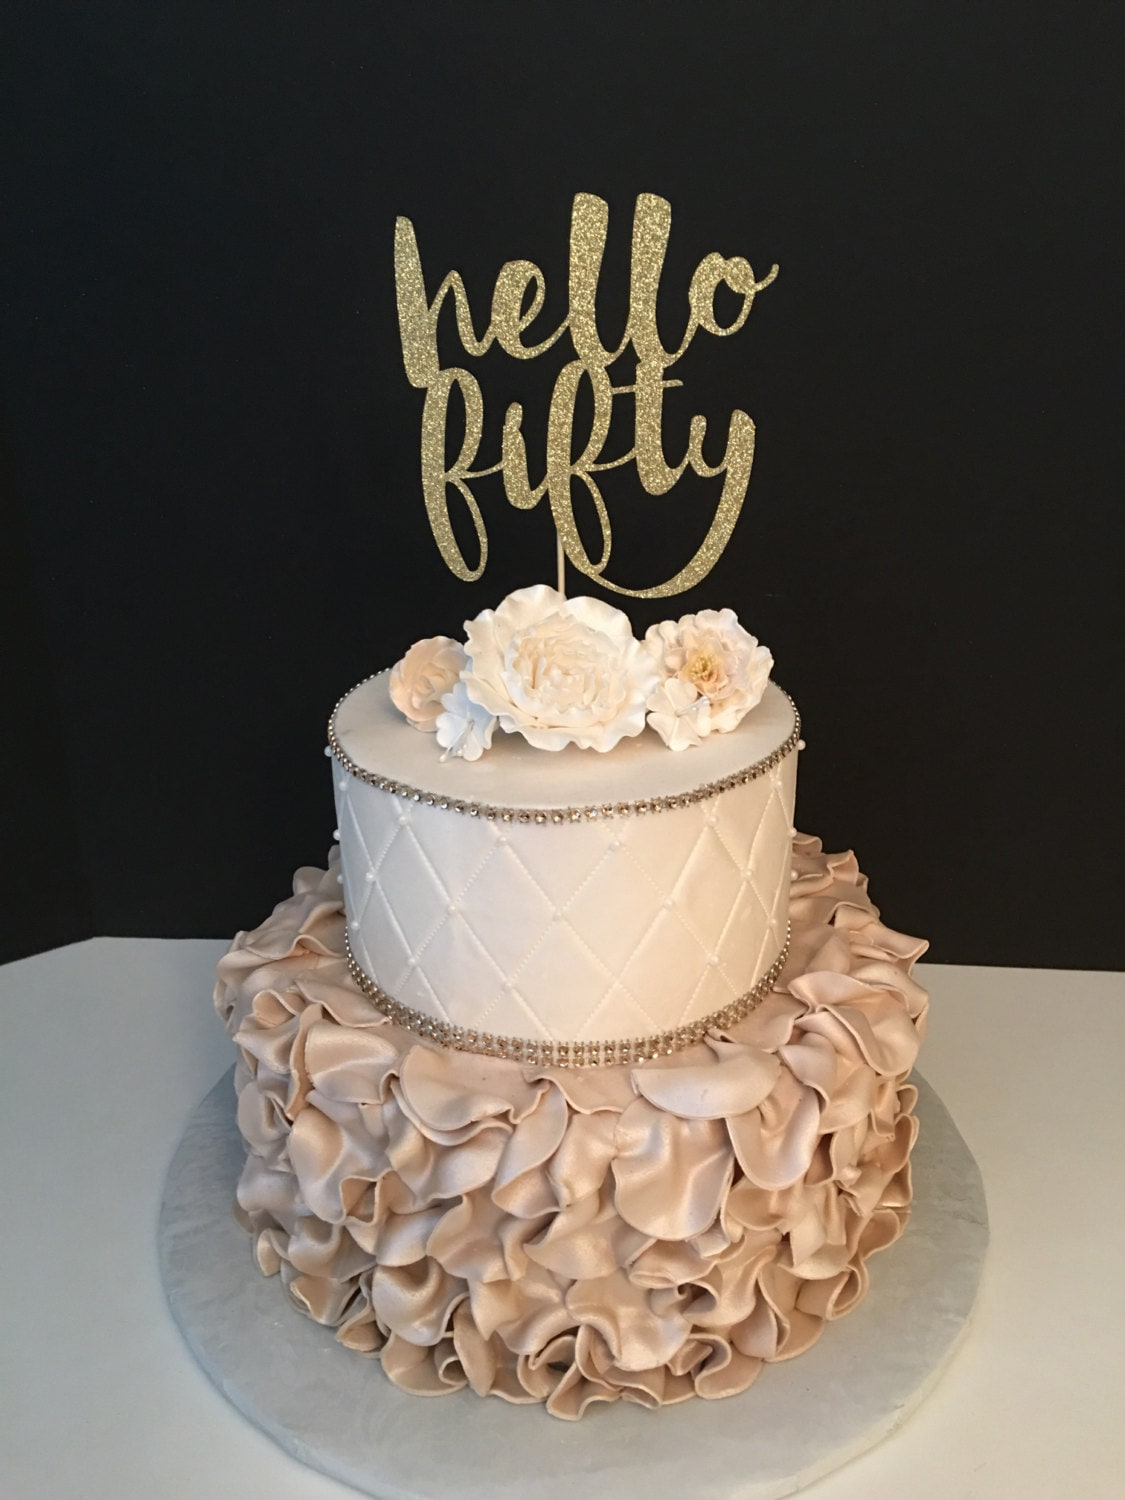 50th birthday cake toppers